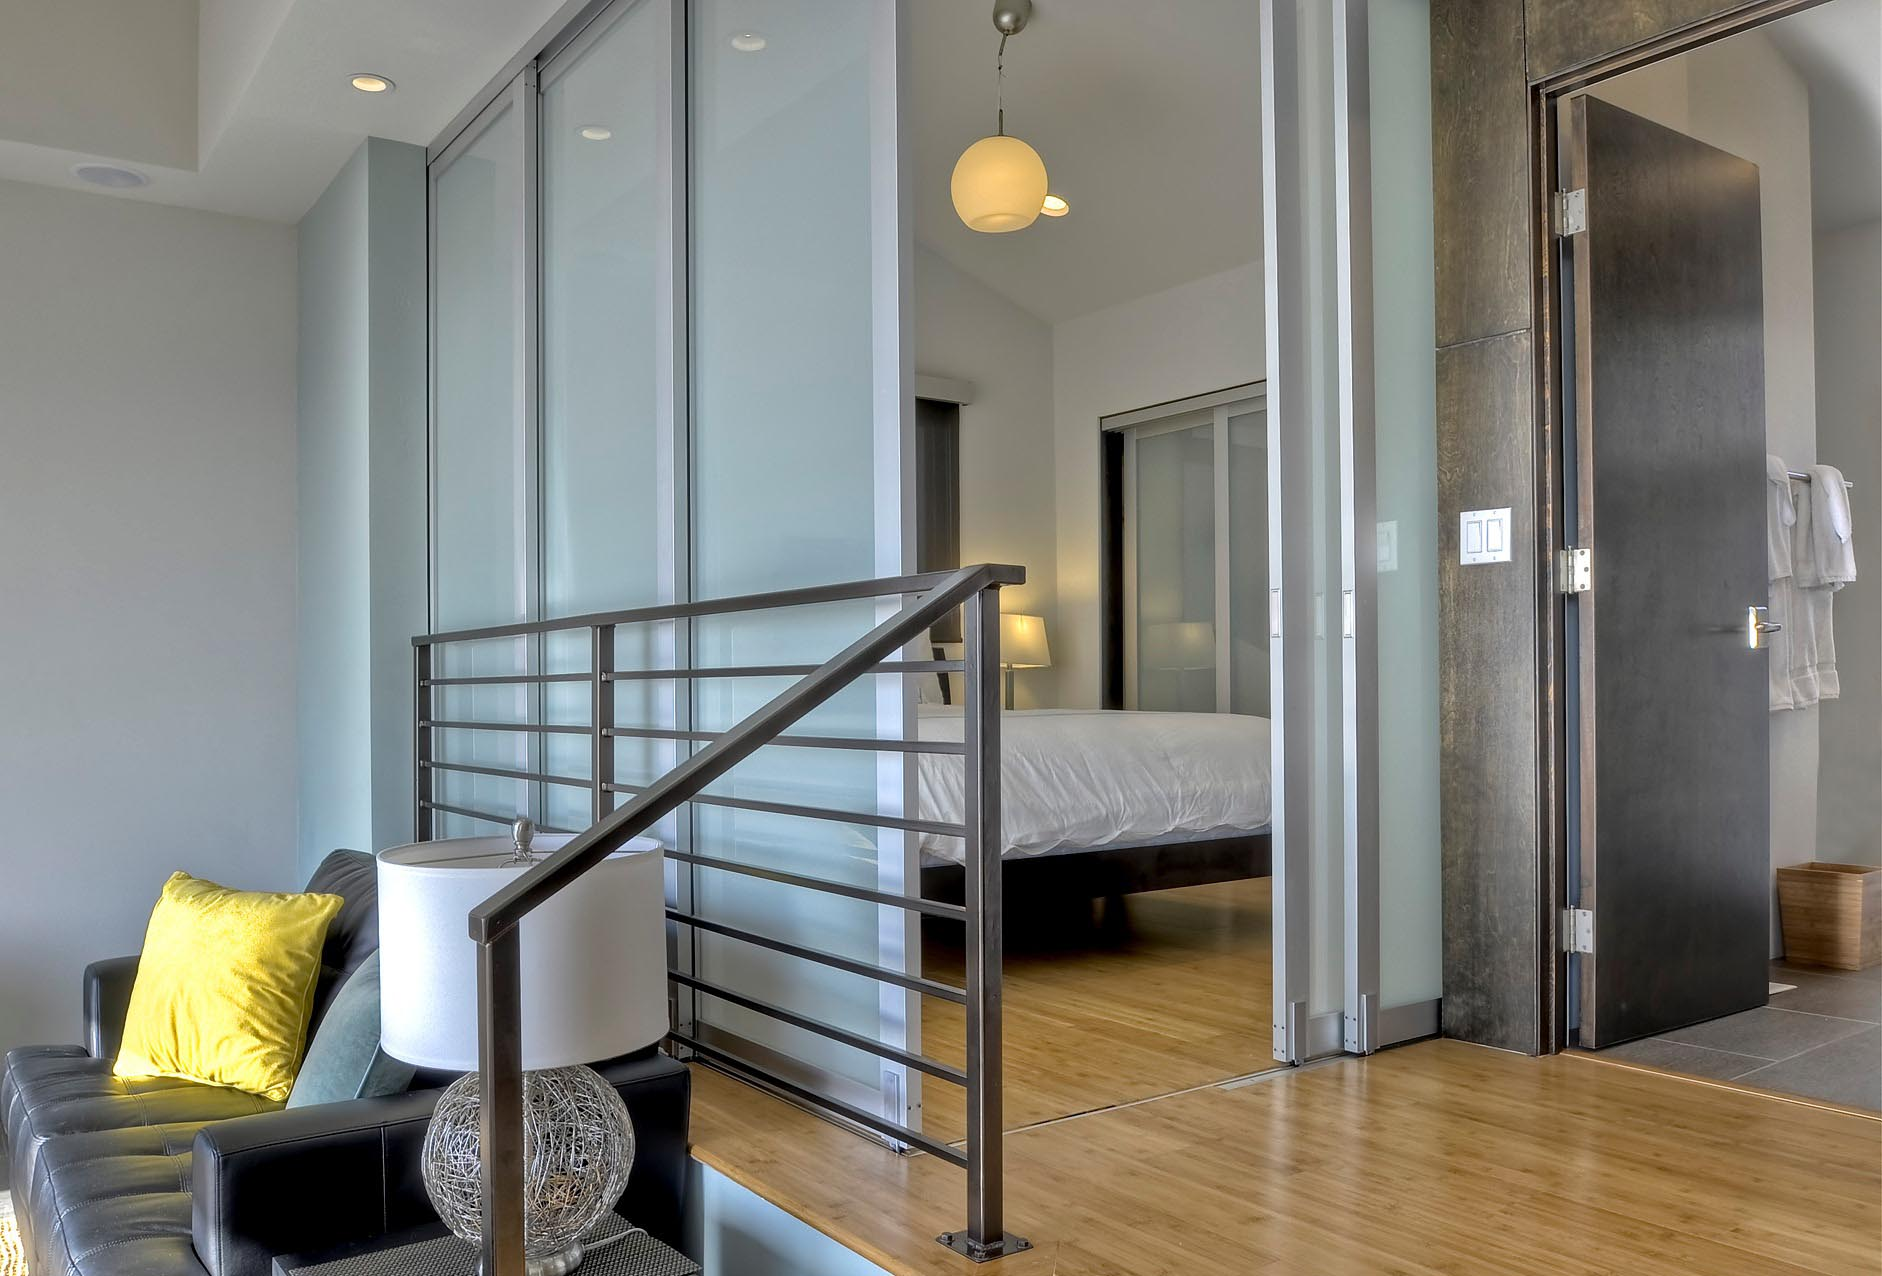 Glass Sliding Room Dividers Best Decor Things